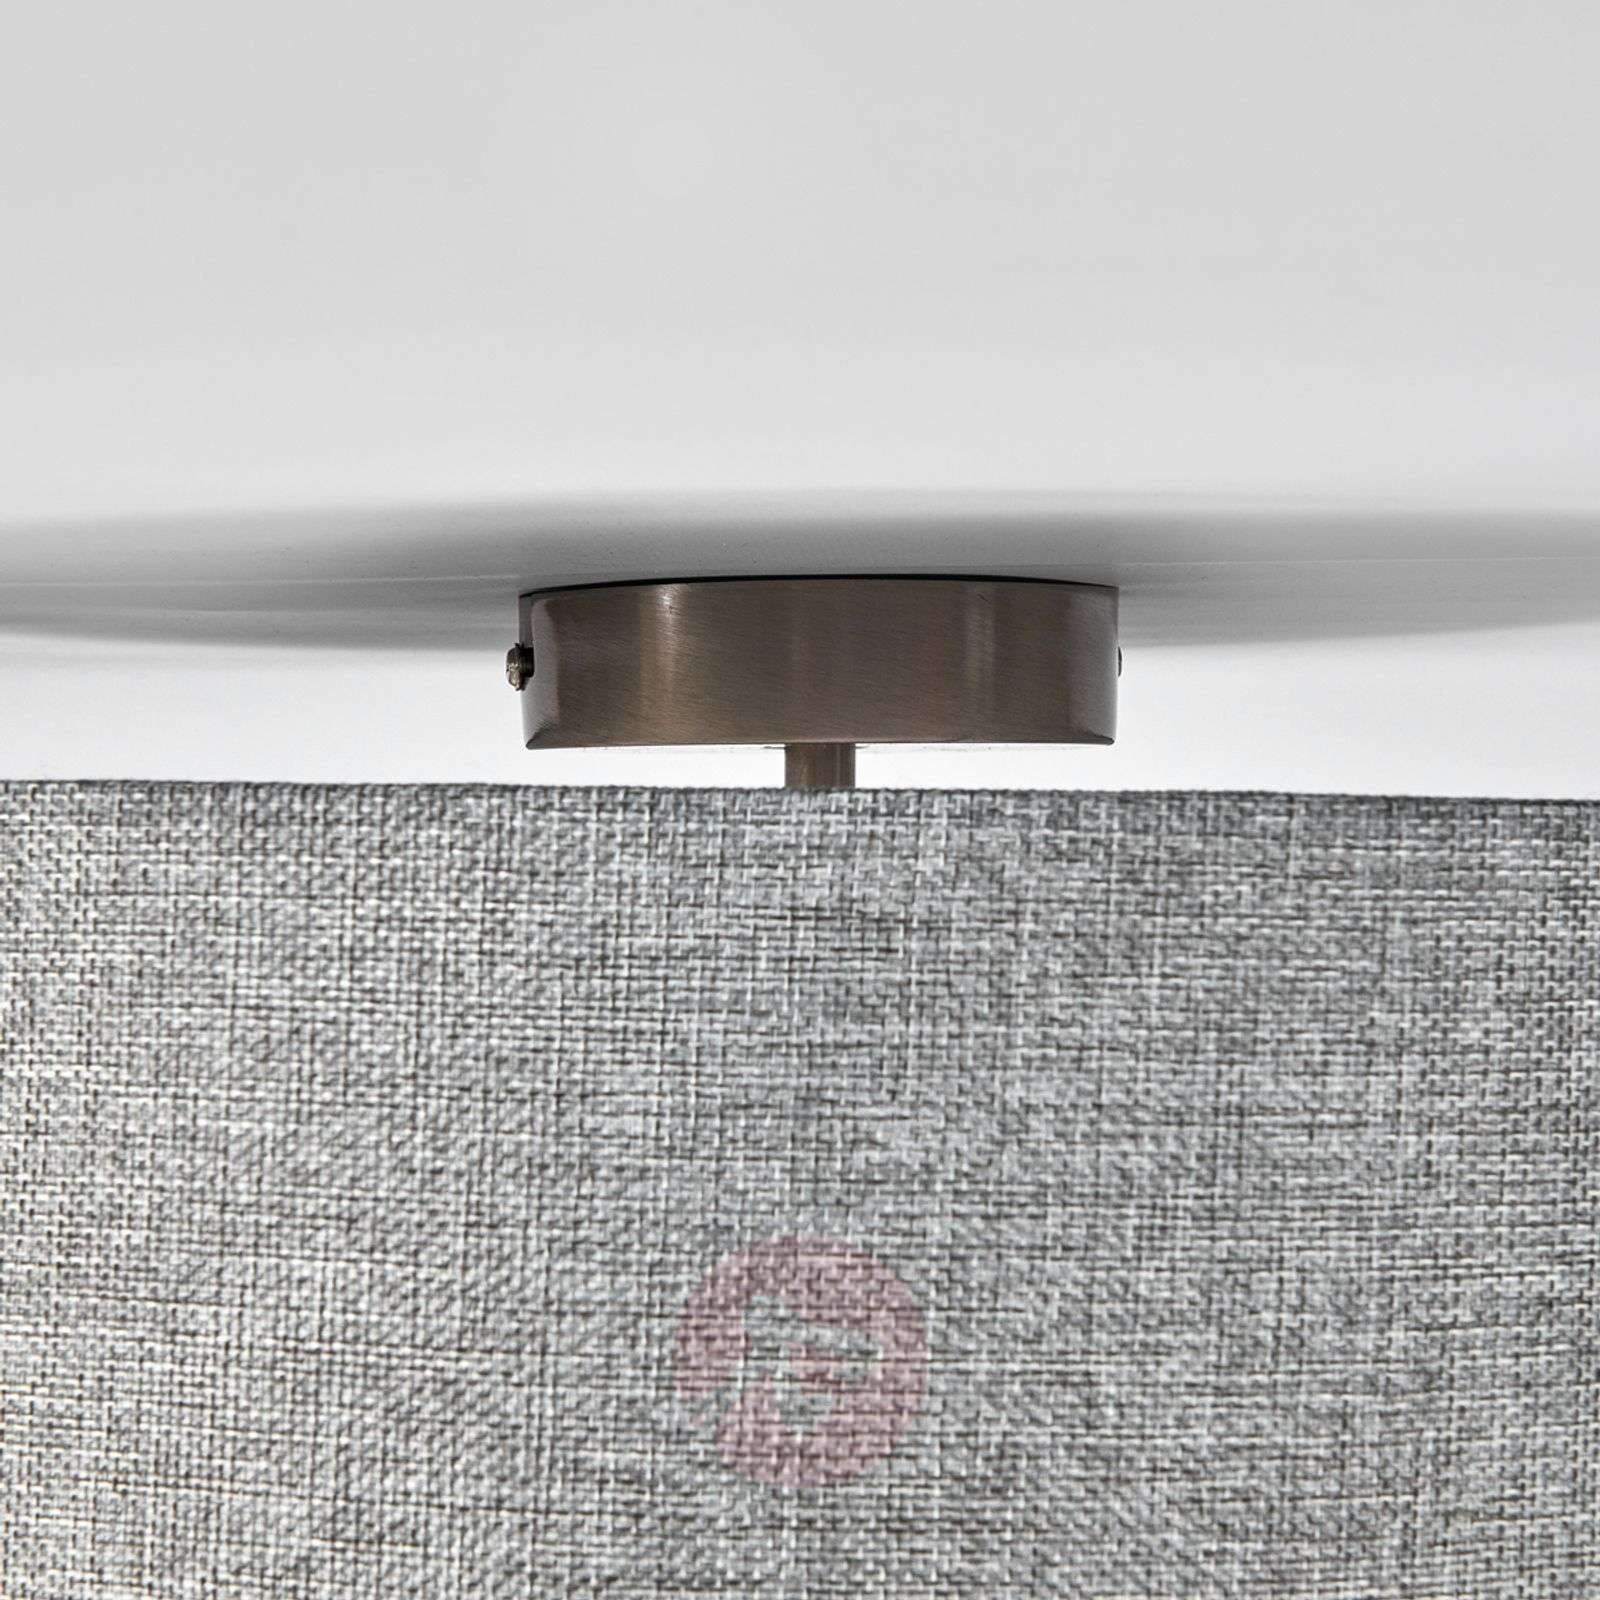 Henrika ceiling light made from grey fabric-4018018-08